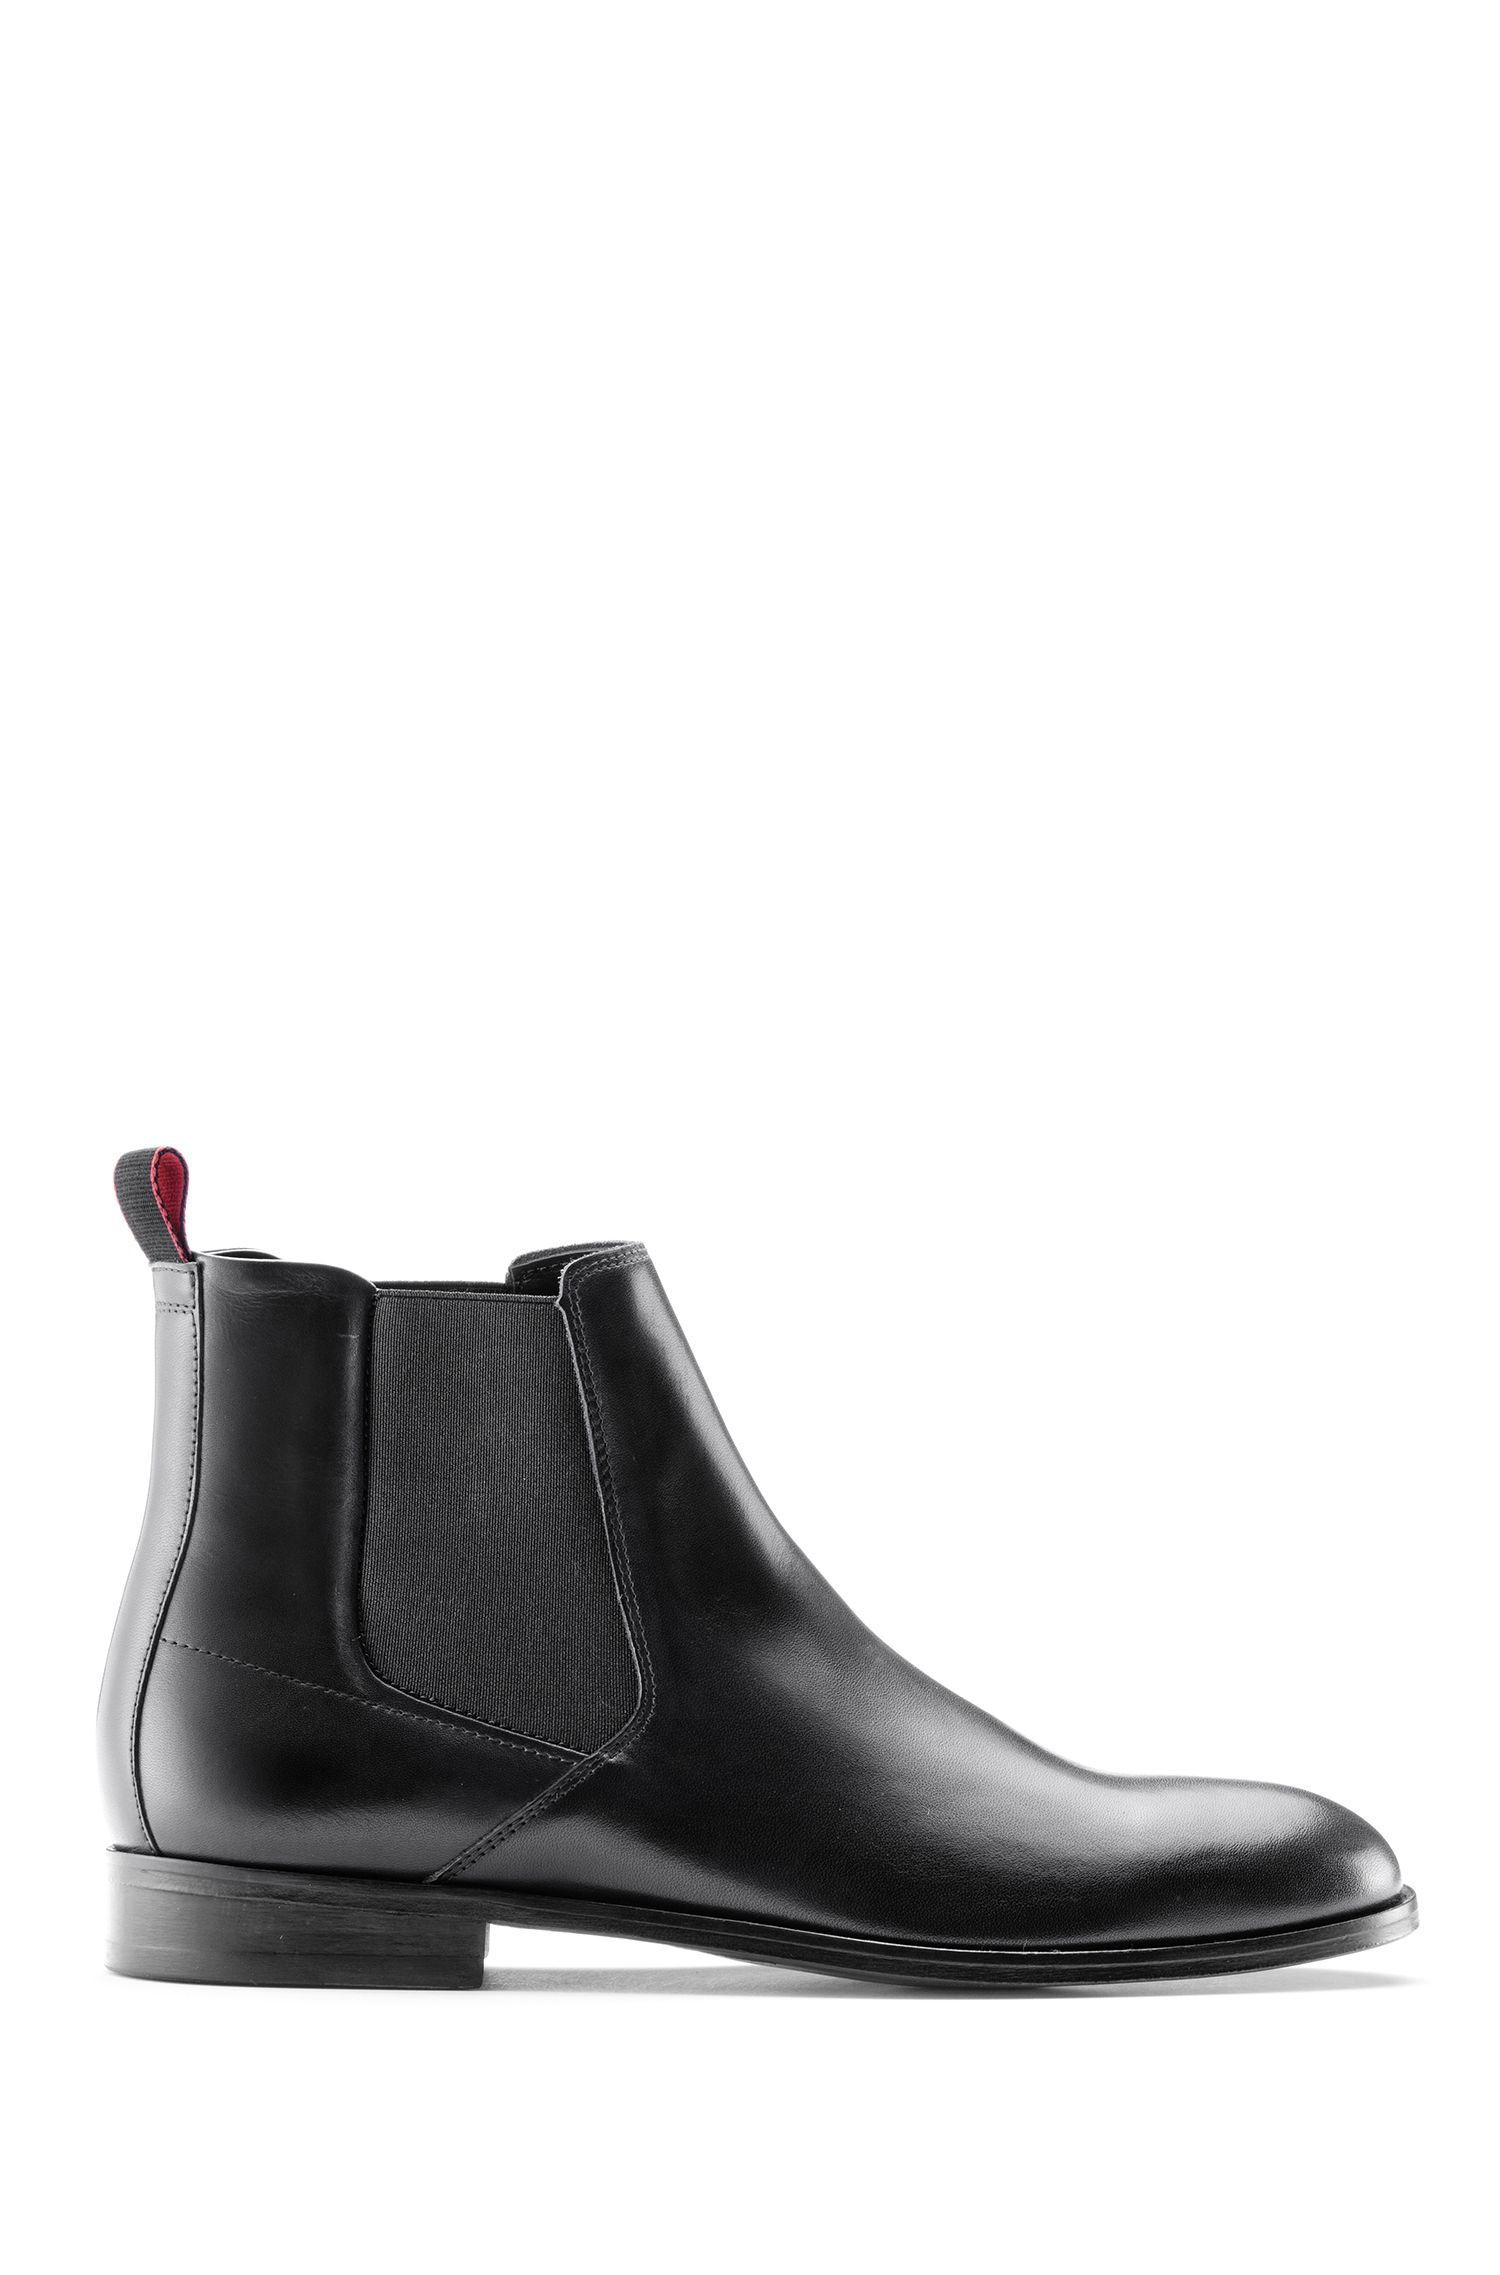 Calf-leather Chelsea boots with leather sole, Black